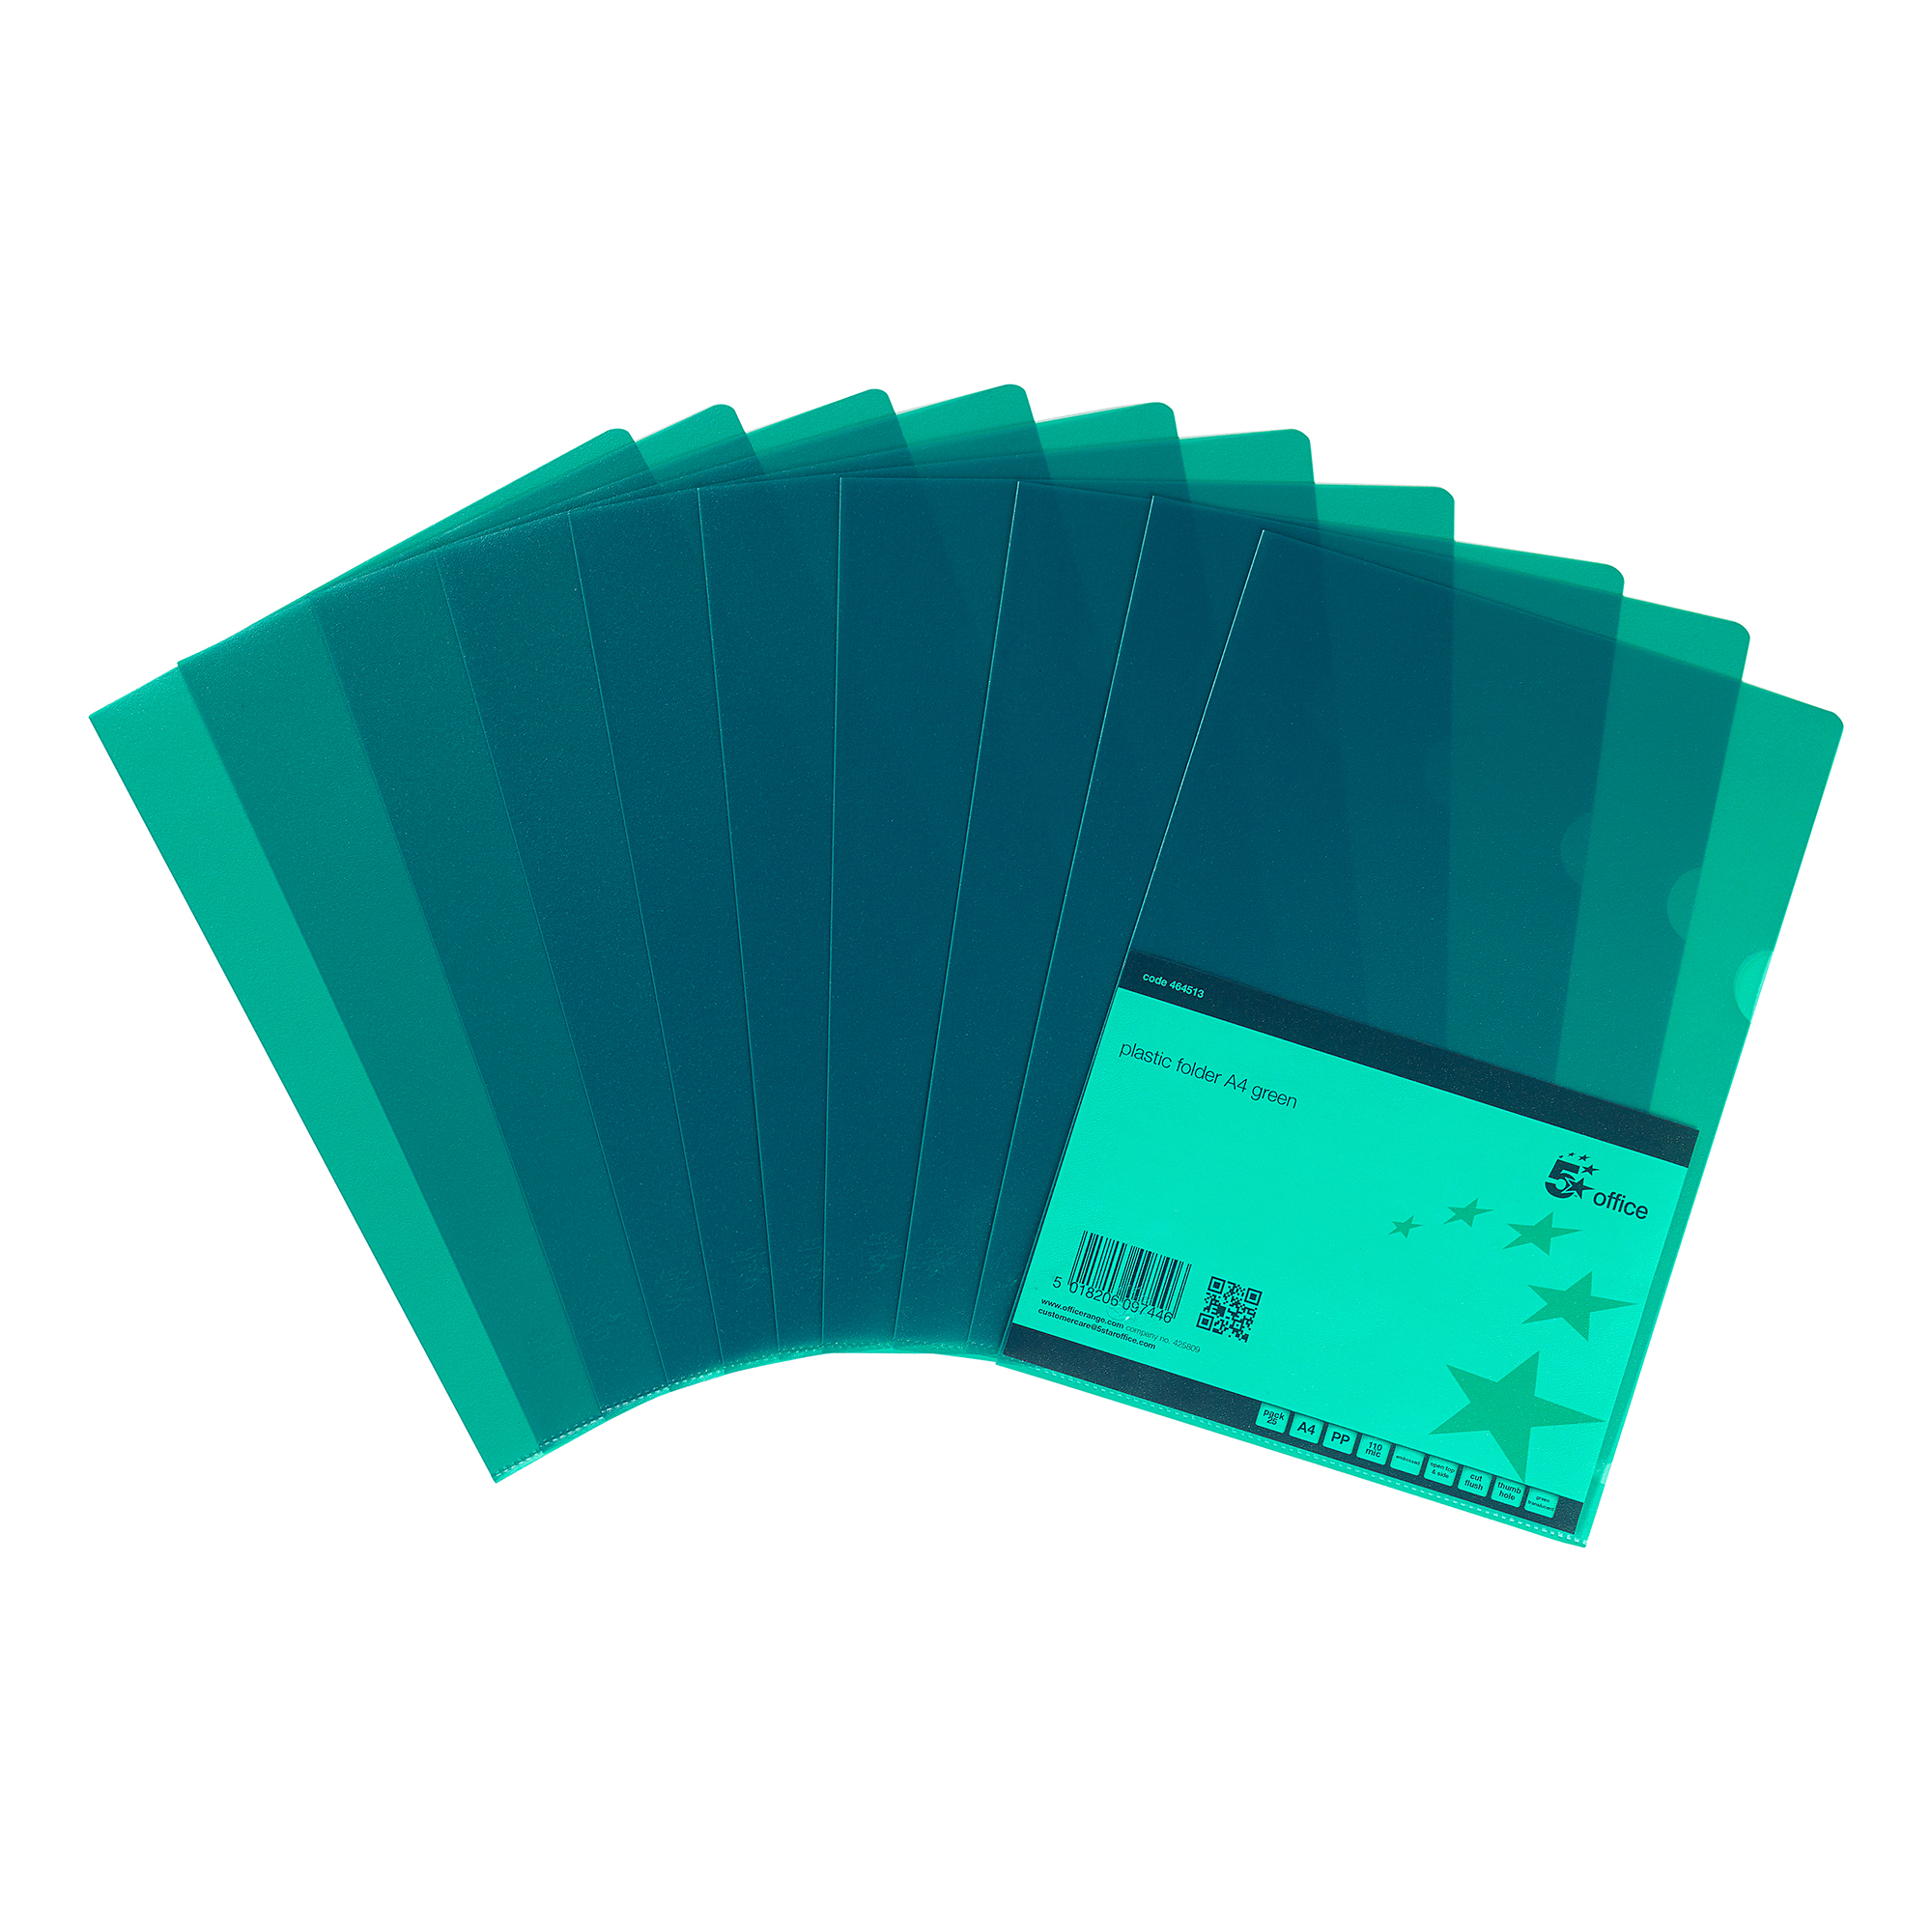 5 Star Office Folder Embossed Cut Flush Polypropylene Copy-safe Translucent 110 Micron A4 Green Pack 25